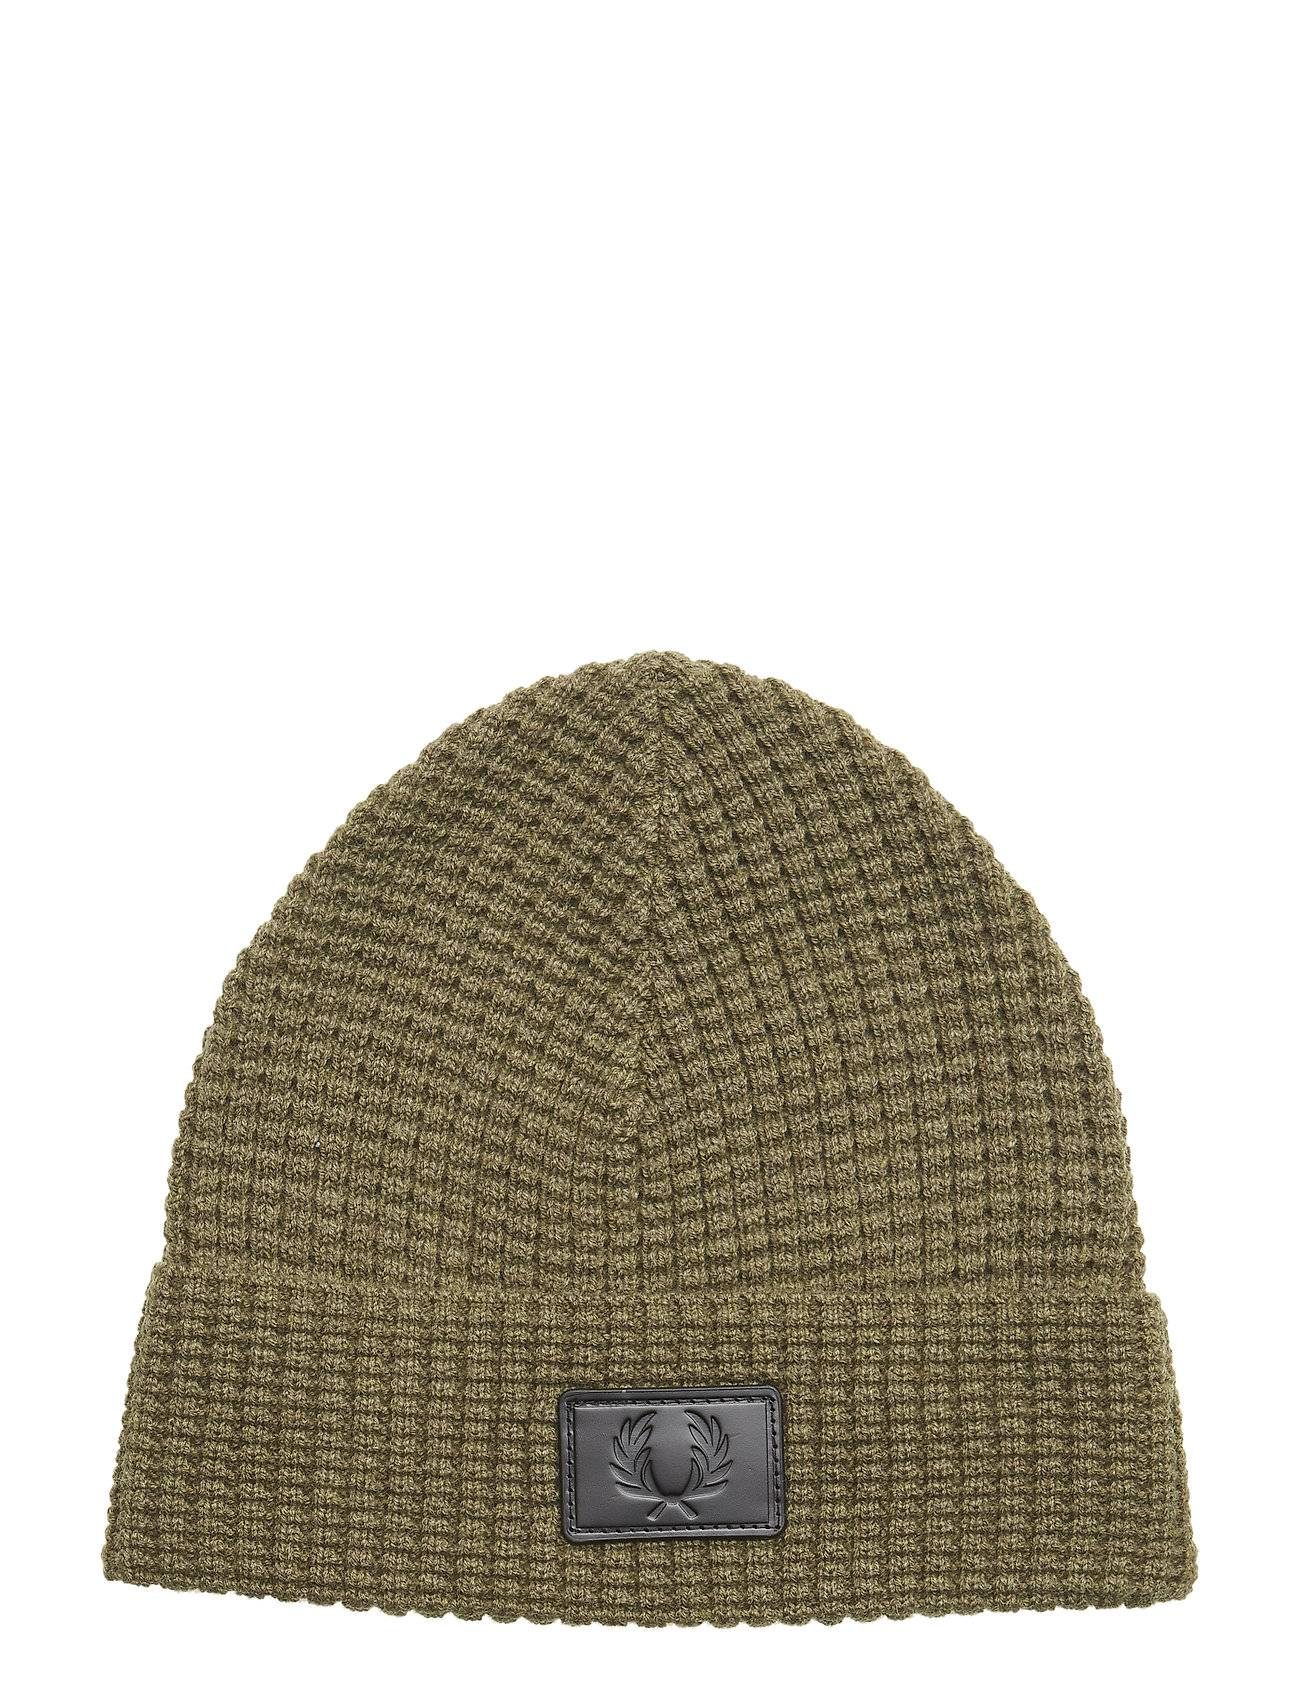 Fred Perry Waffle Knit Beanie